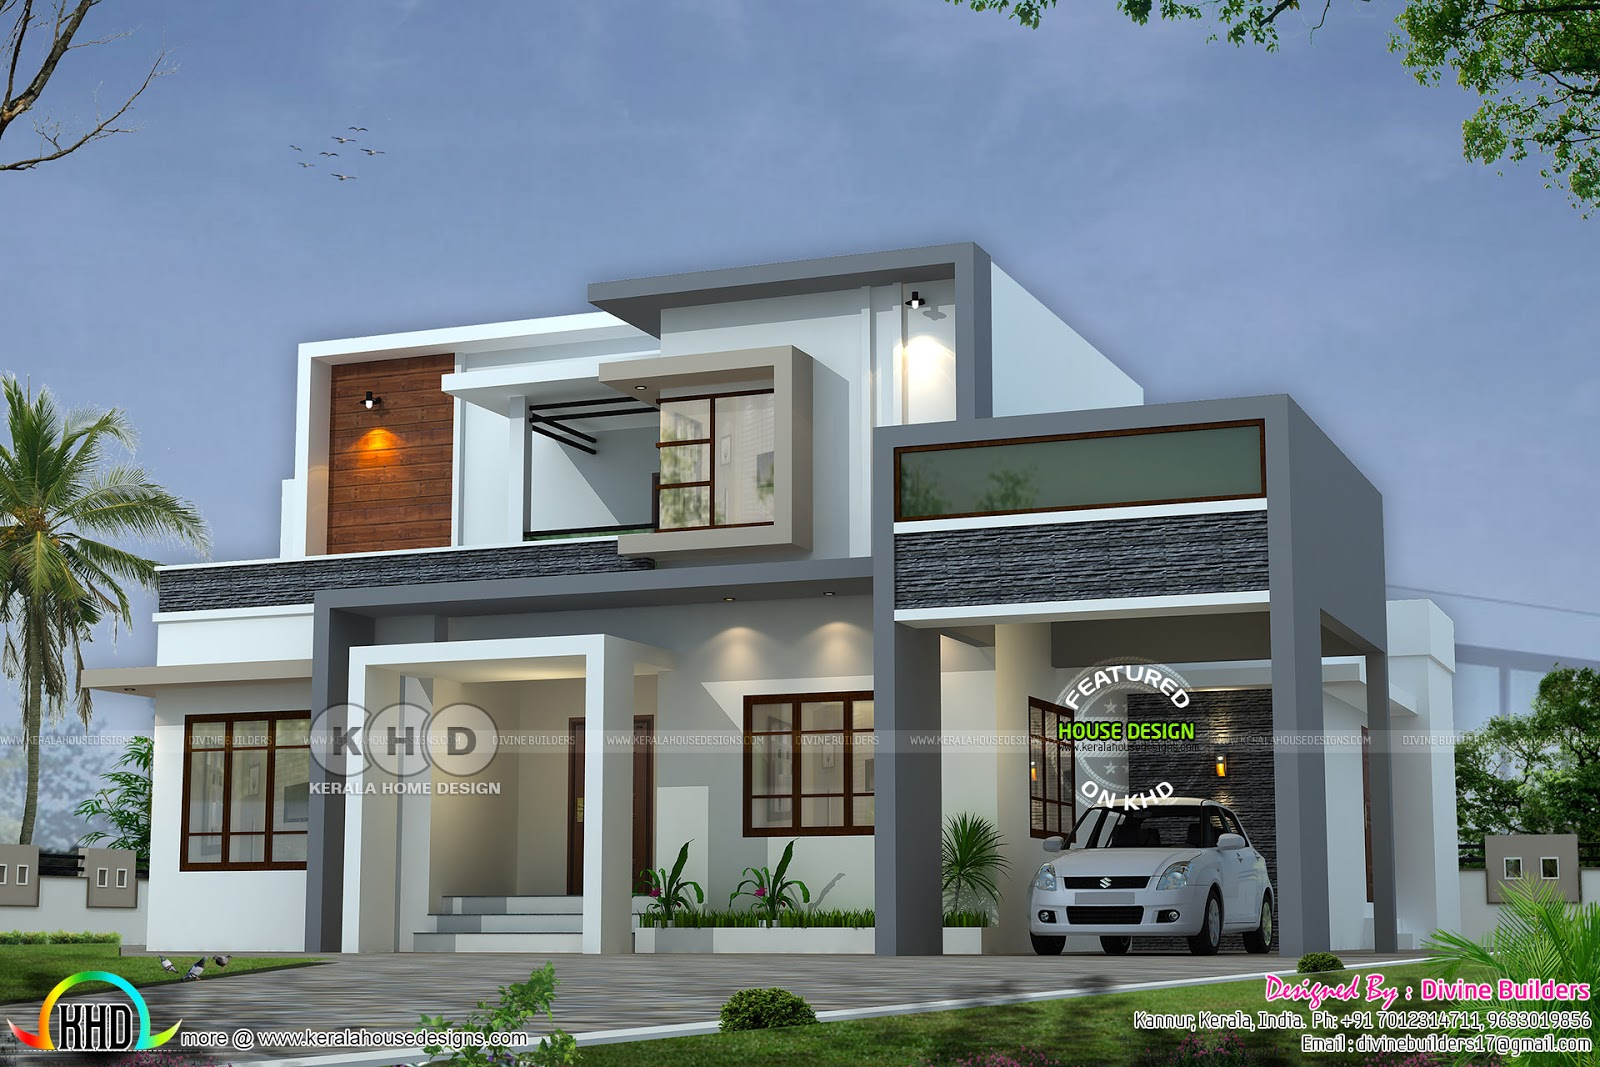 2017 kerala home design and floor plans for Www home